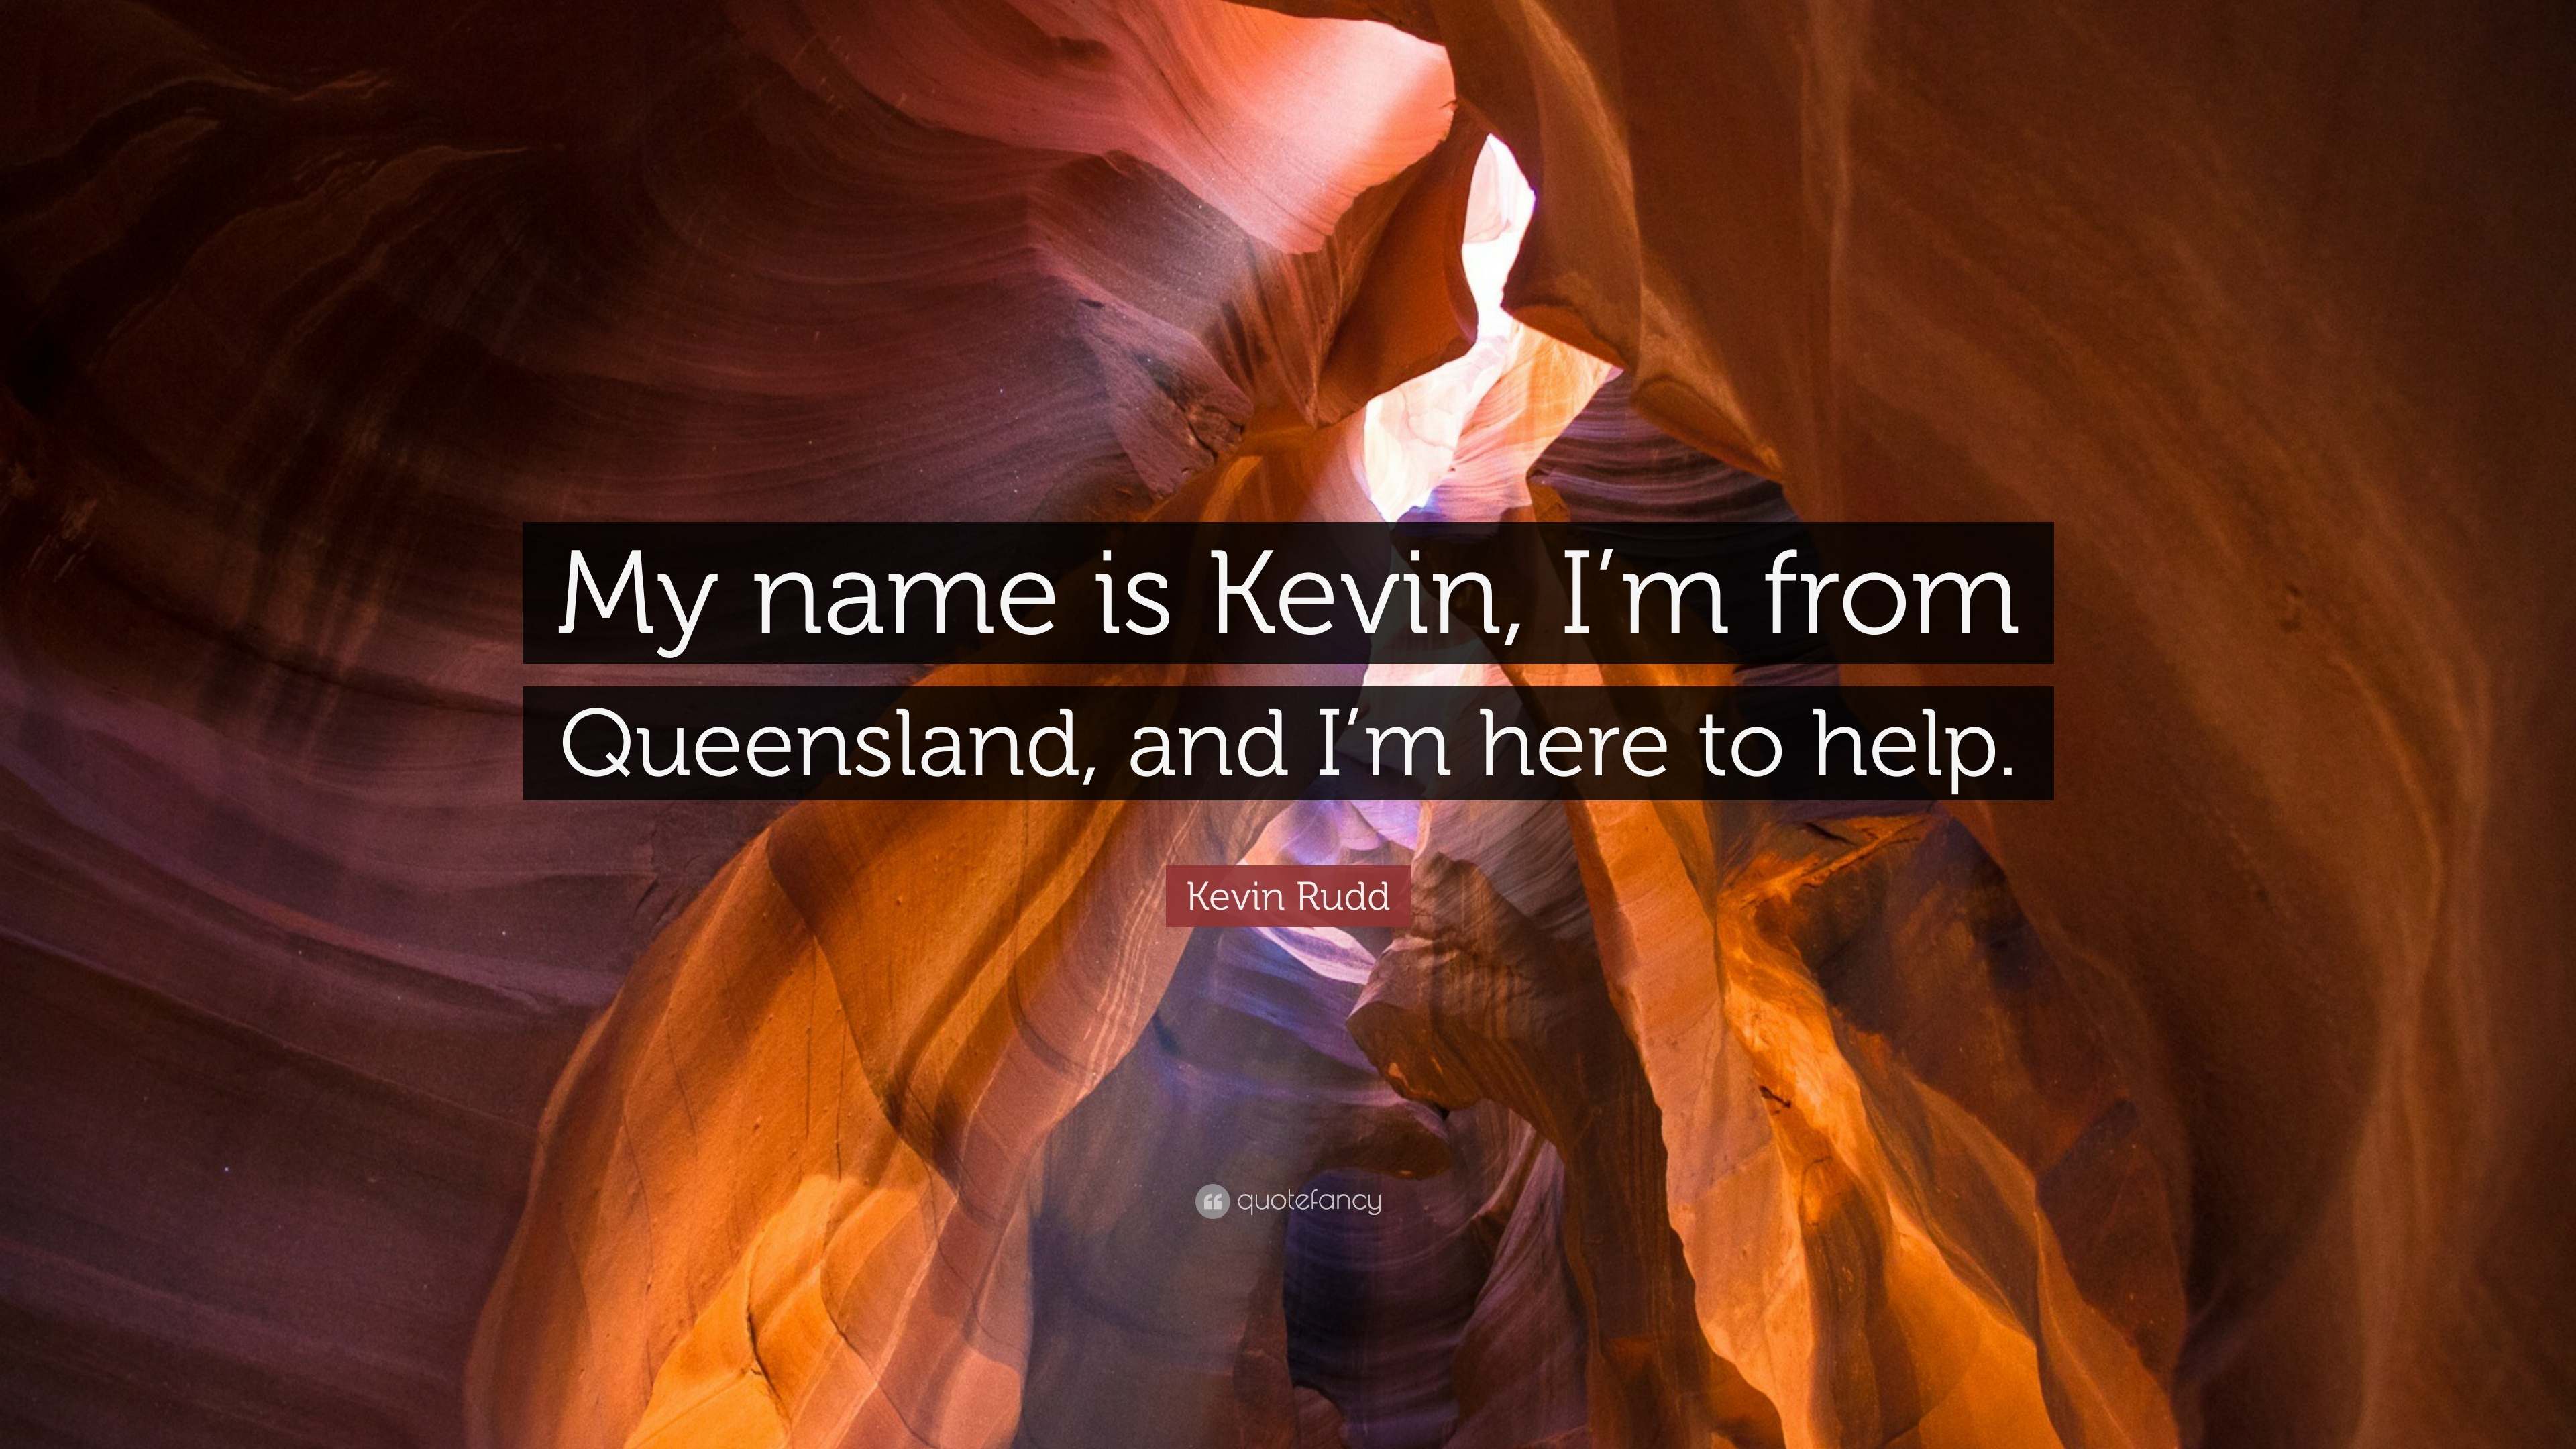 Kevin Rudd Quote My Name Is Kevin I M From Queensland And I M Here To Help 7 Wallpapers Quotefancy